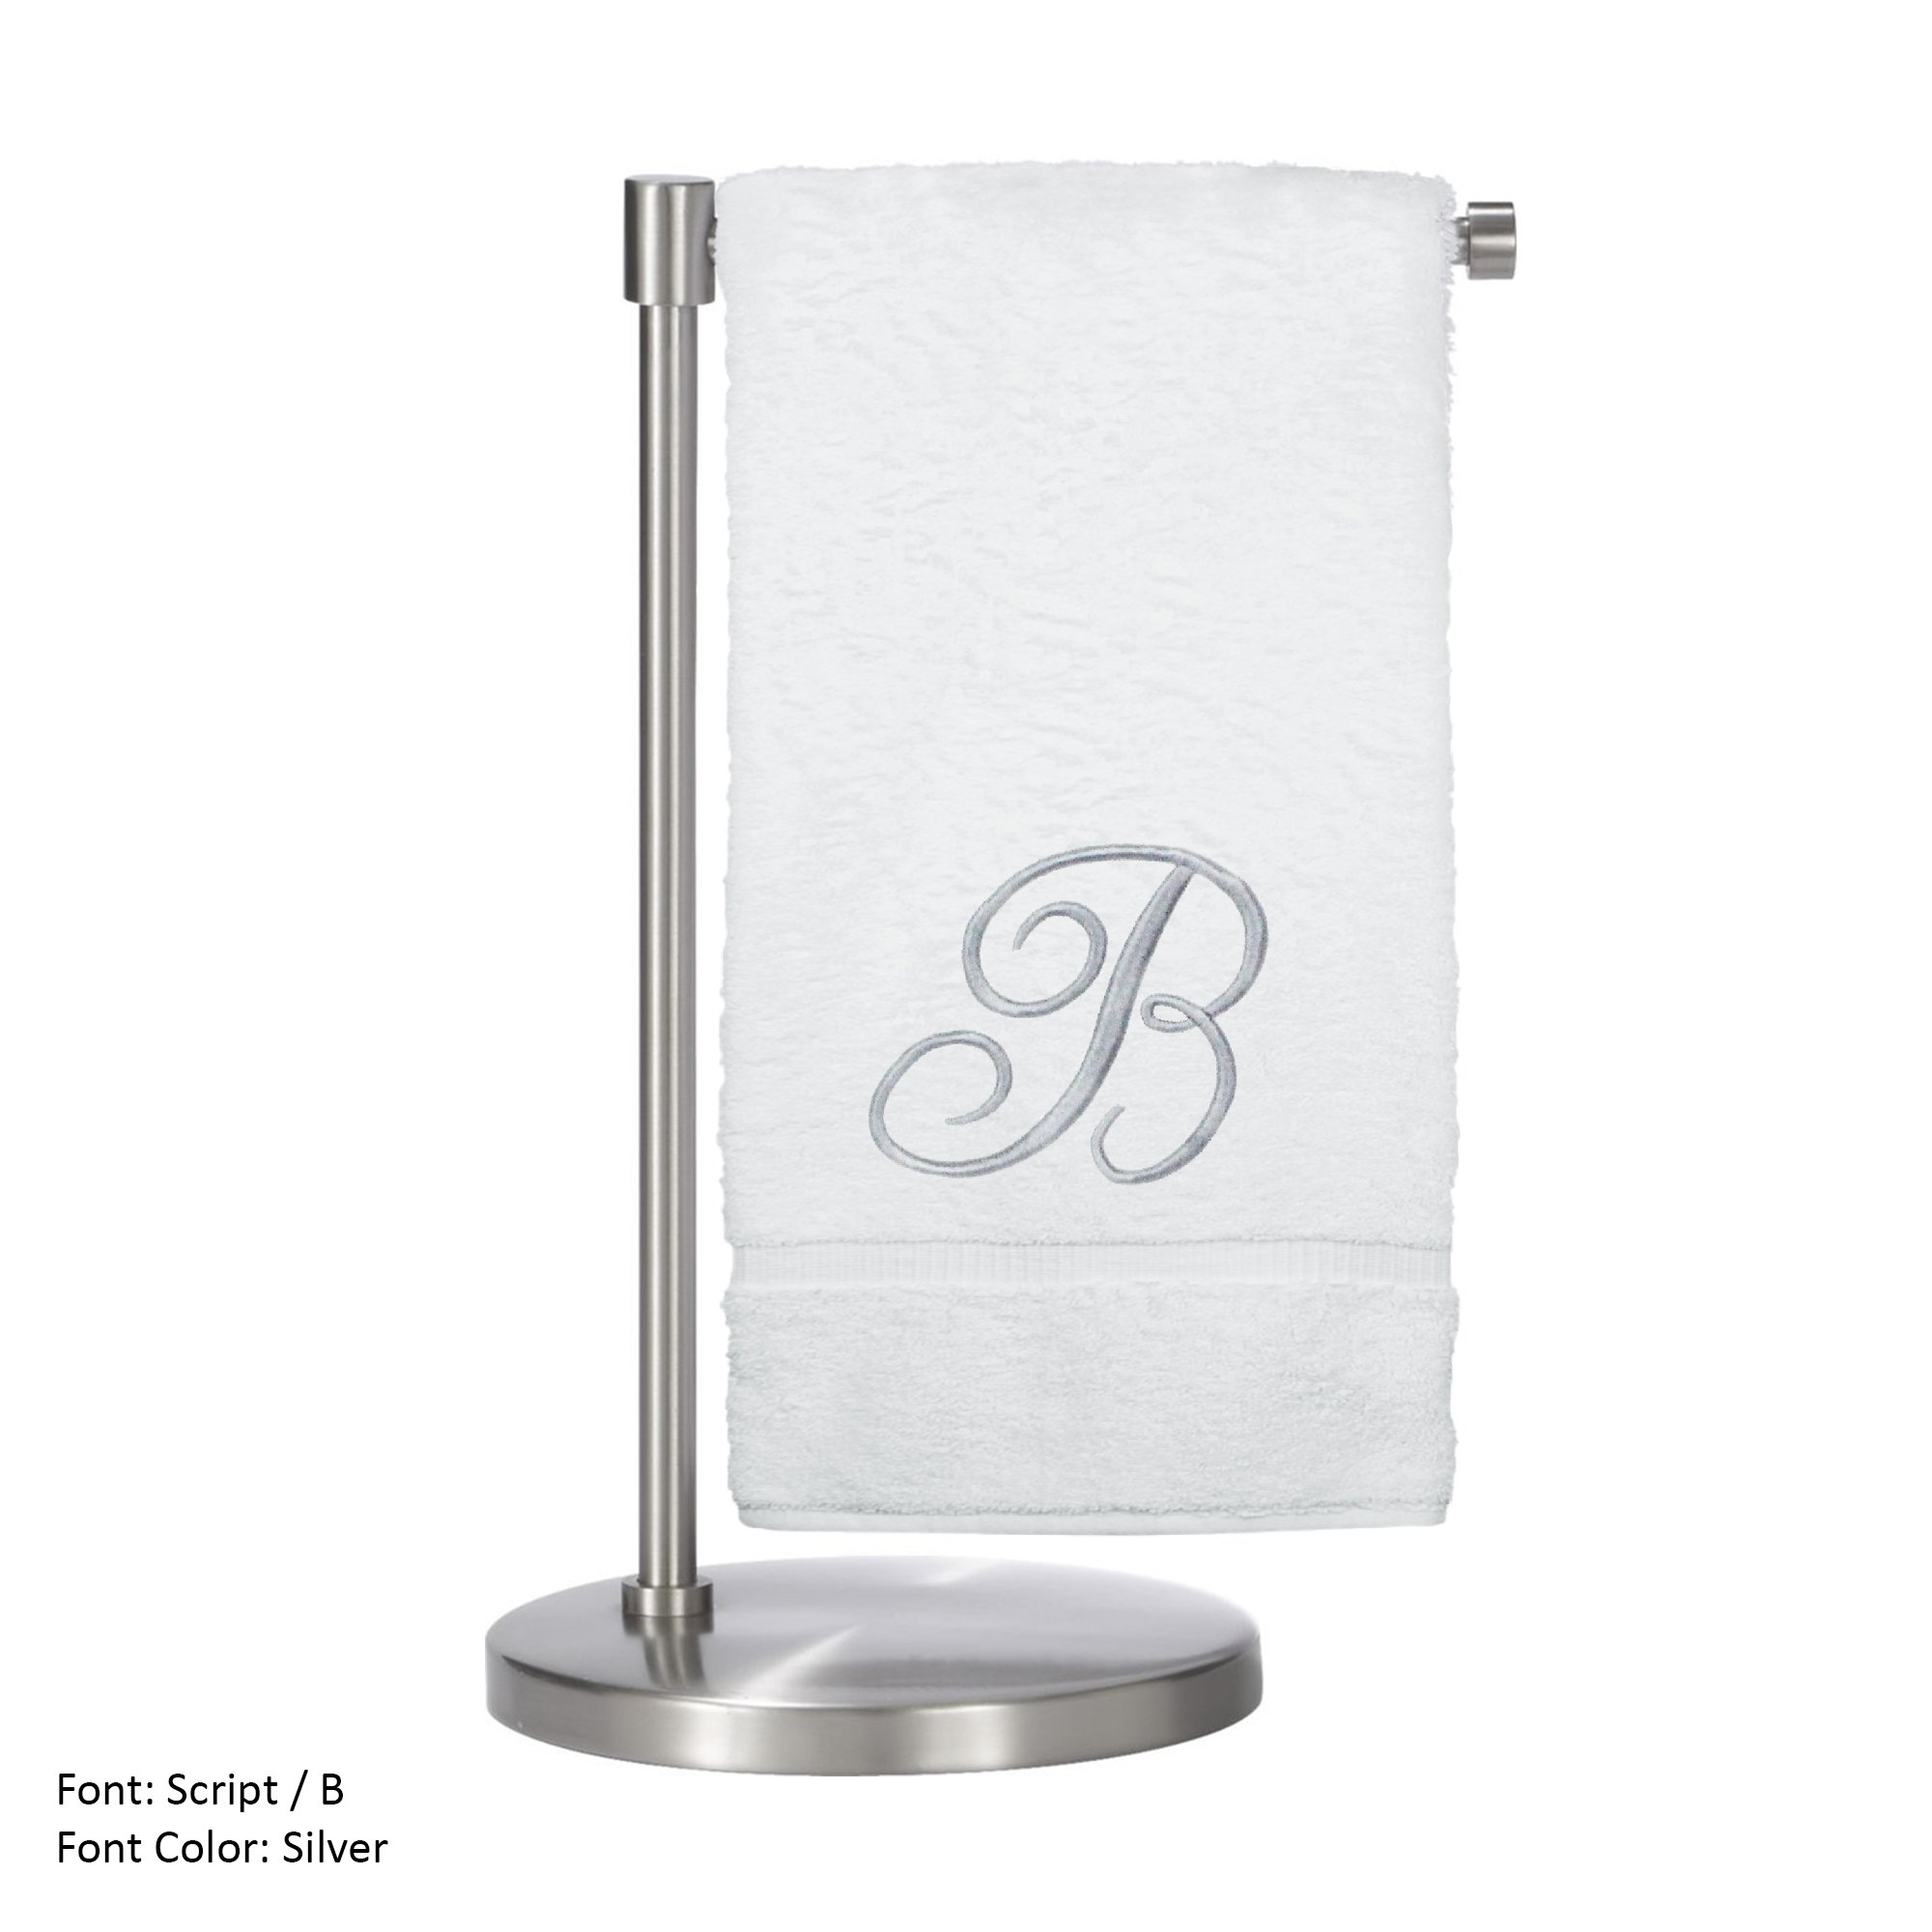 Monogrammed Bath Towel, Personalized Gift, 27 x 54 inches - Set of 1 - Silver Script Embroidered Towel - 100% Turkish Cotton- Soft Terry Finish - for Bathroom or Spa - Script B White